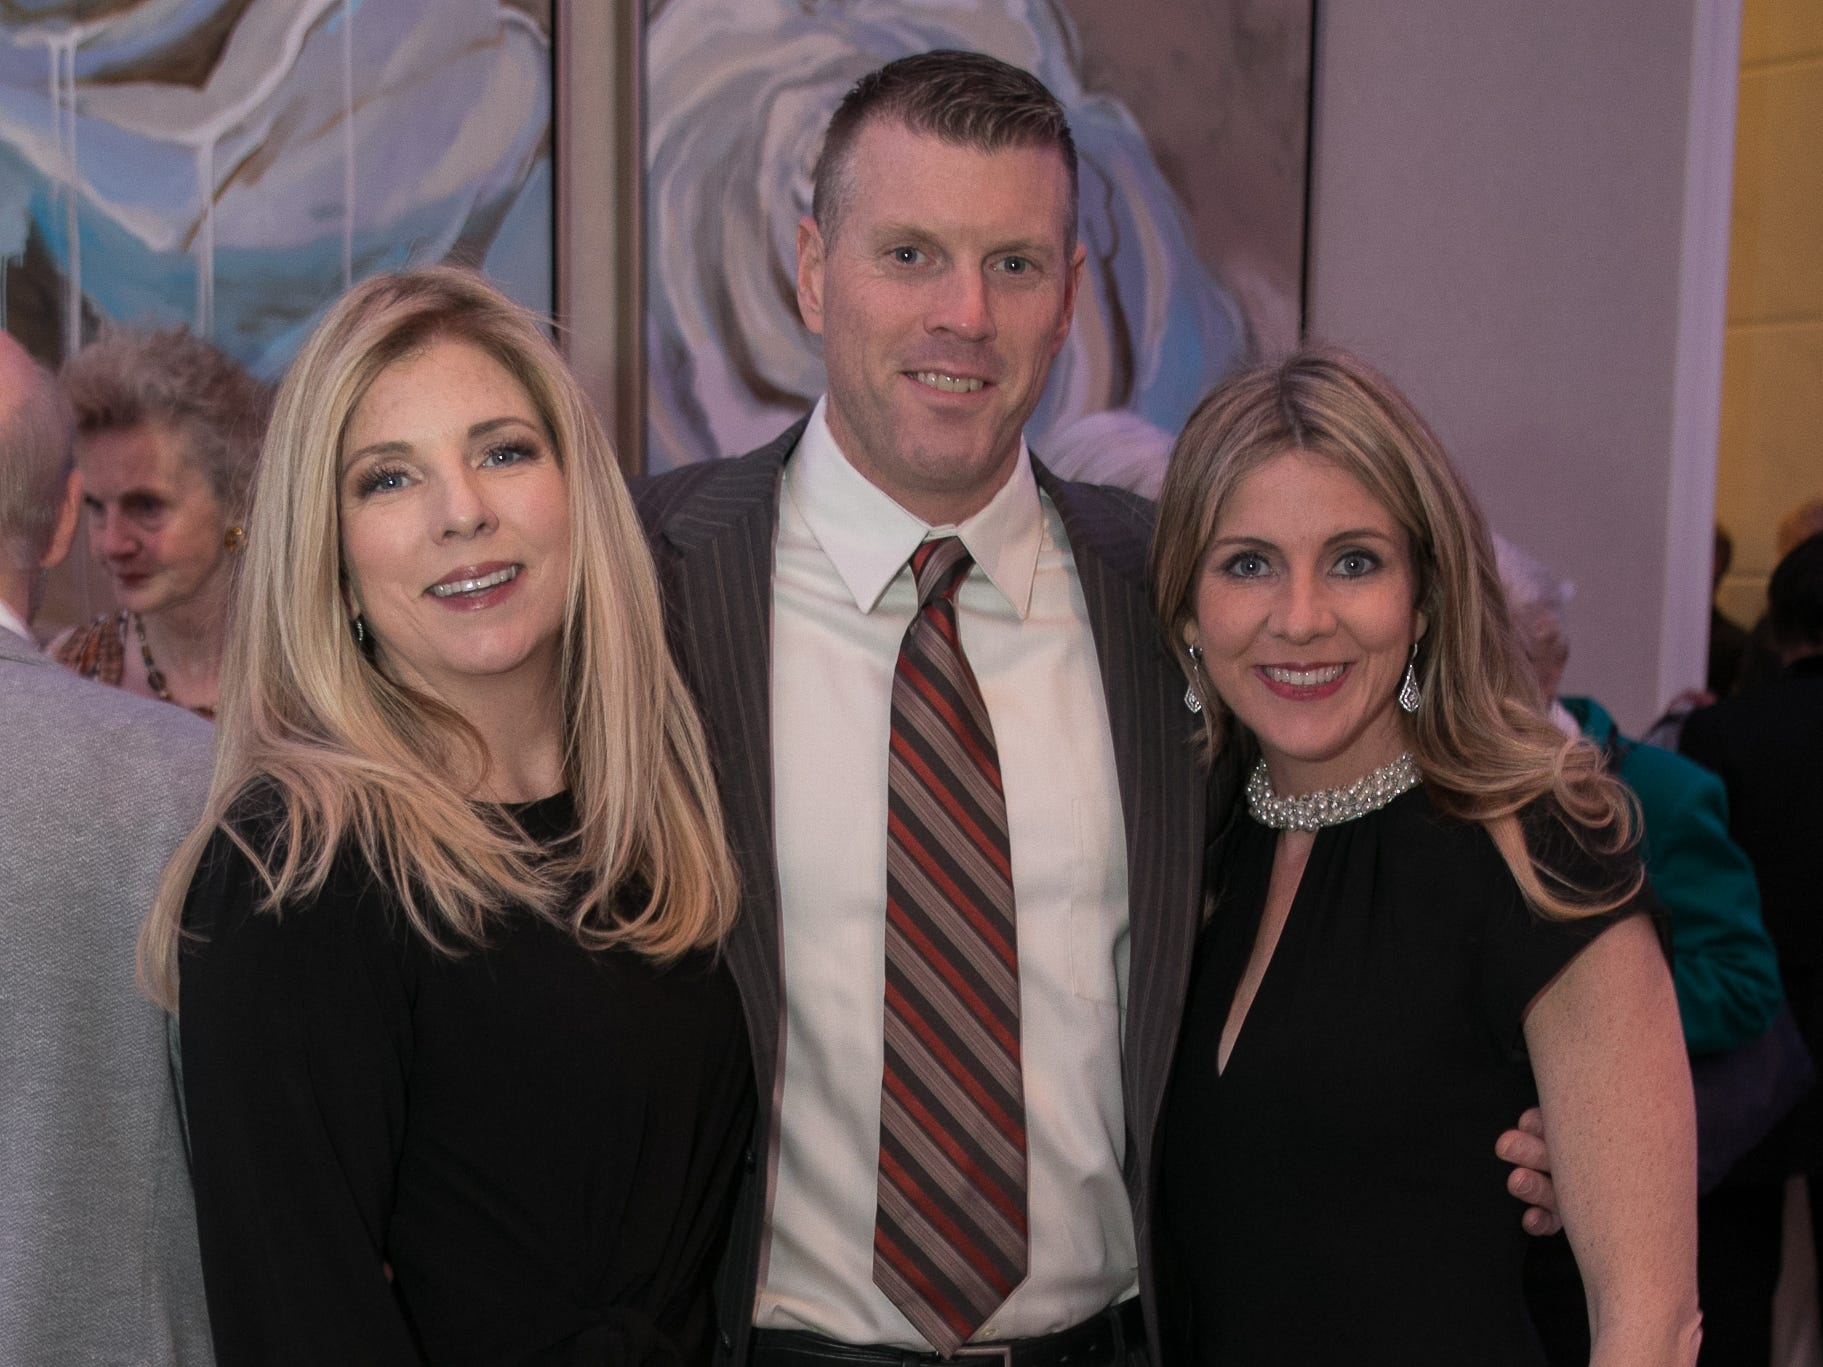 Geraldine Wacker, Dan Curtin, Jennifer O'Shea Curtin. Academy of The Holy Angels held their 22nd annual Angelic Evening at Edgewood Country Club in RiverVale. 03/22/2019